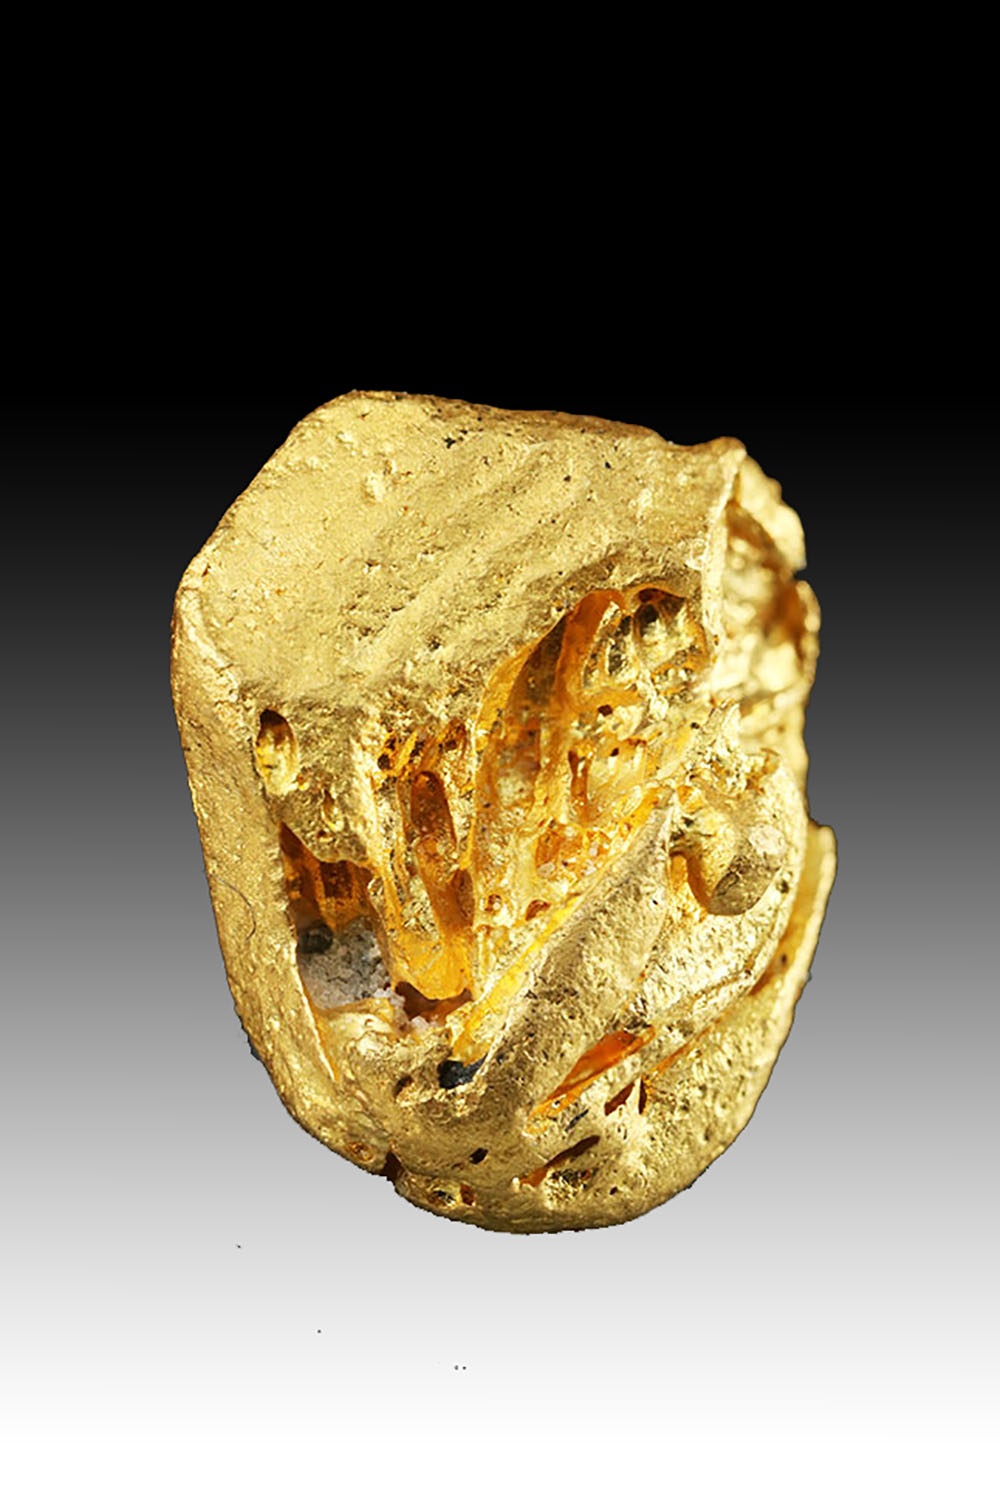 Hoppered Gold Nugget Crystal from Venezuela